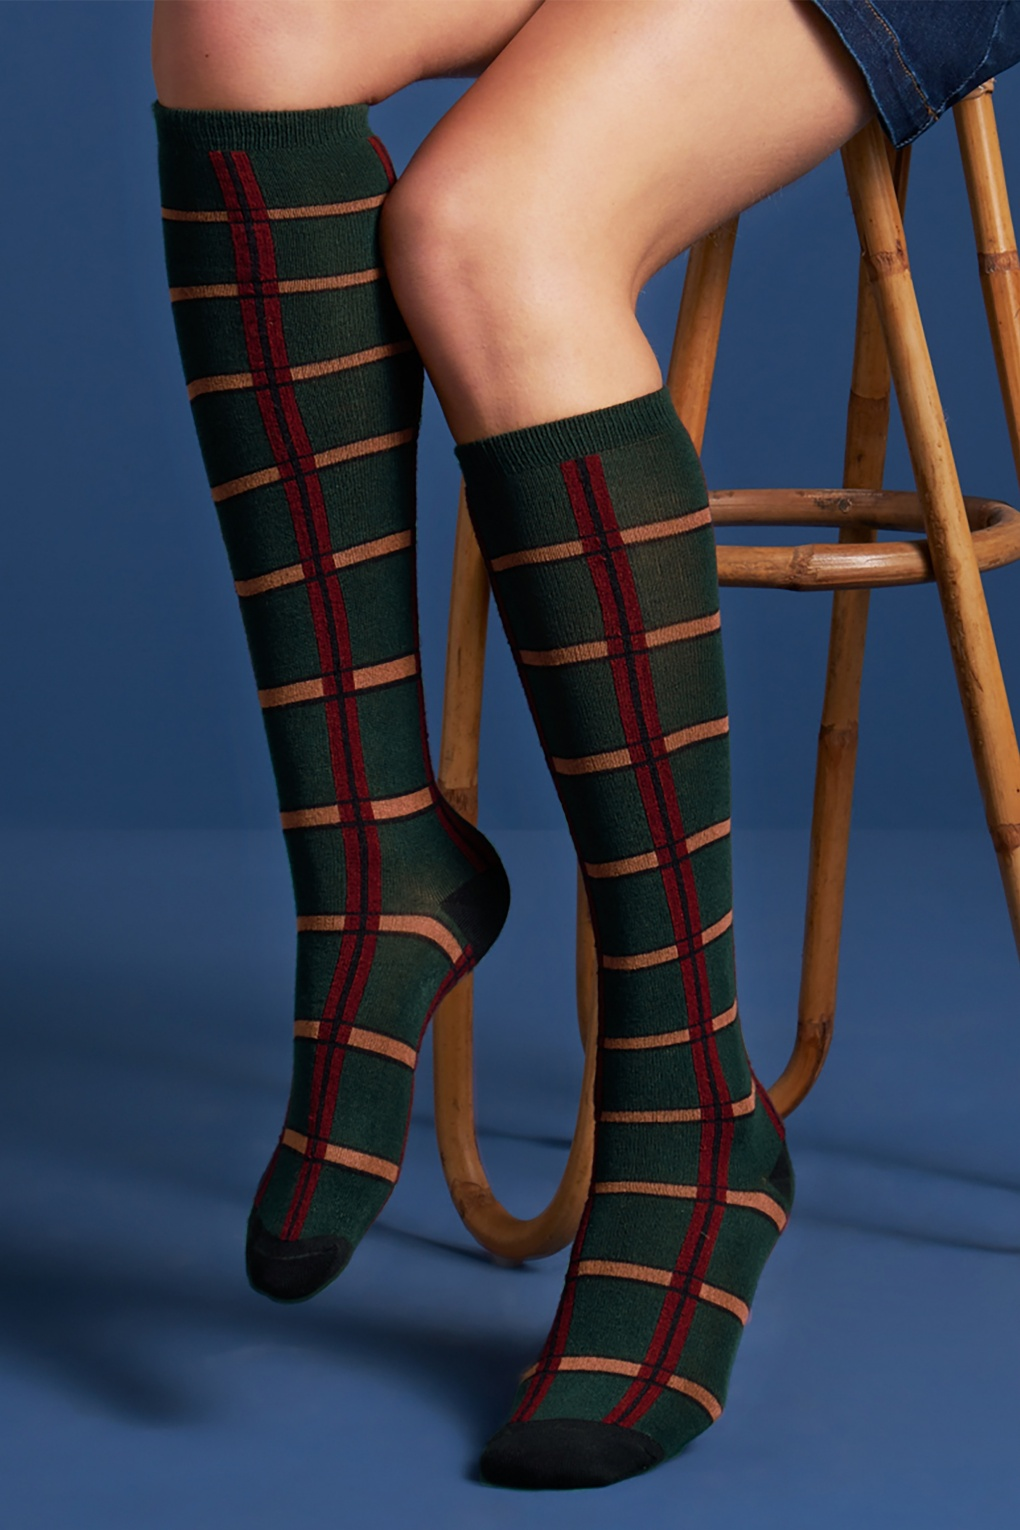 1960s Tights, Stockings, Panty Hose, Knee High Socks 60s Check Knee Socks in Pine Green £17.16 AT vintagedancer.com